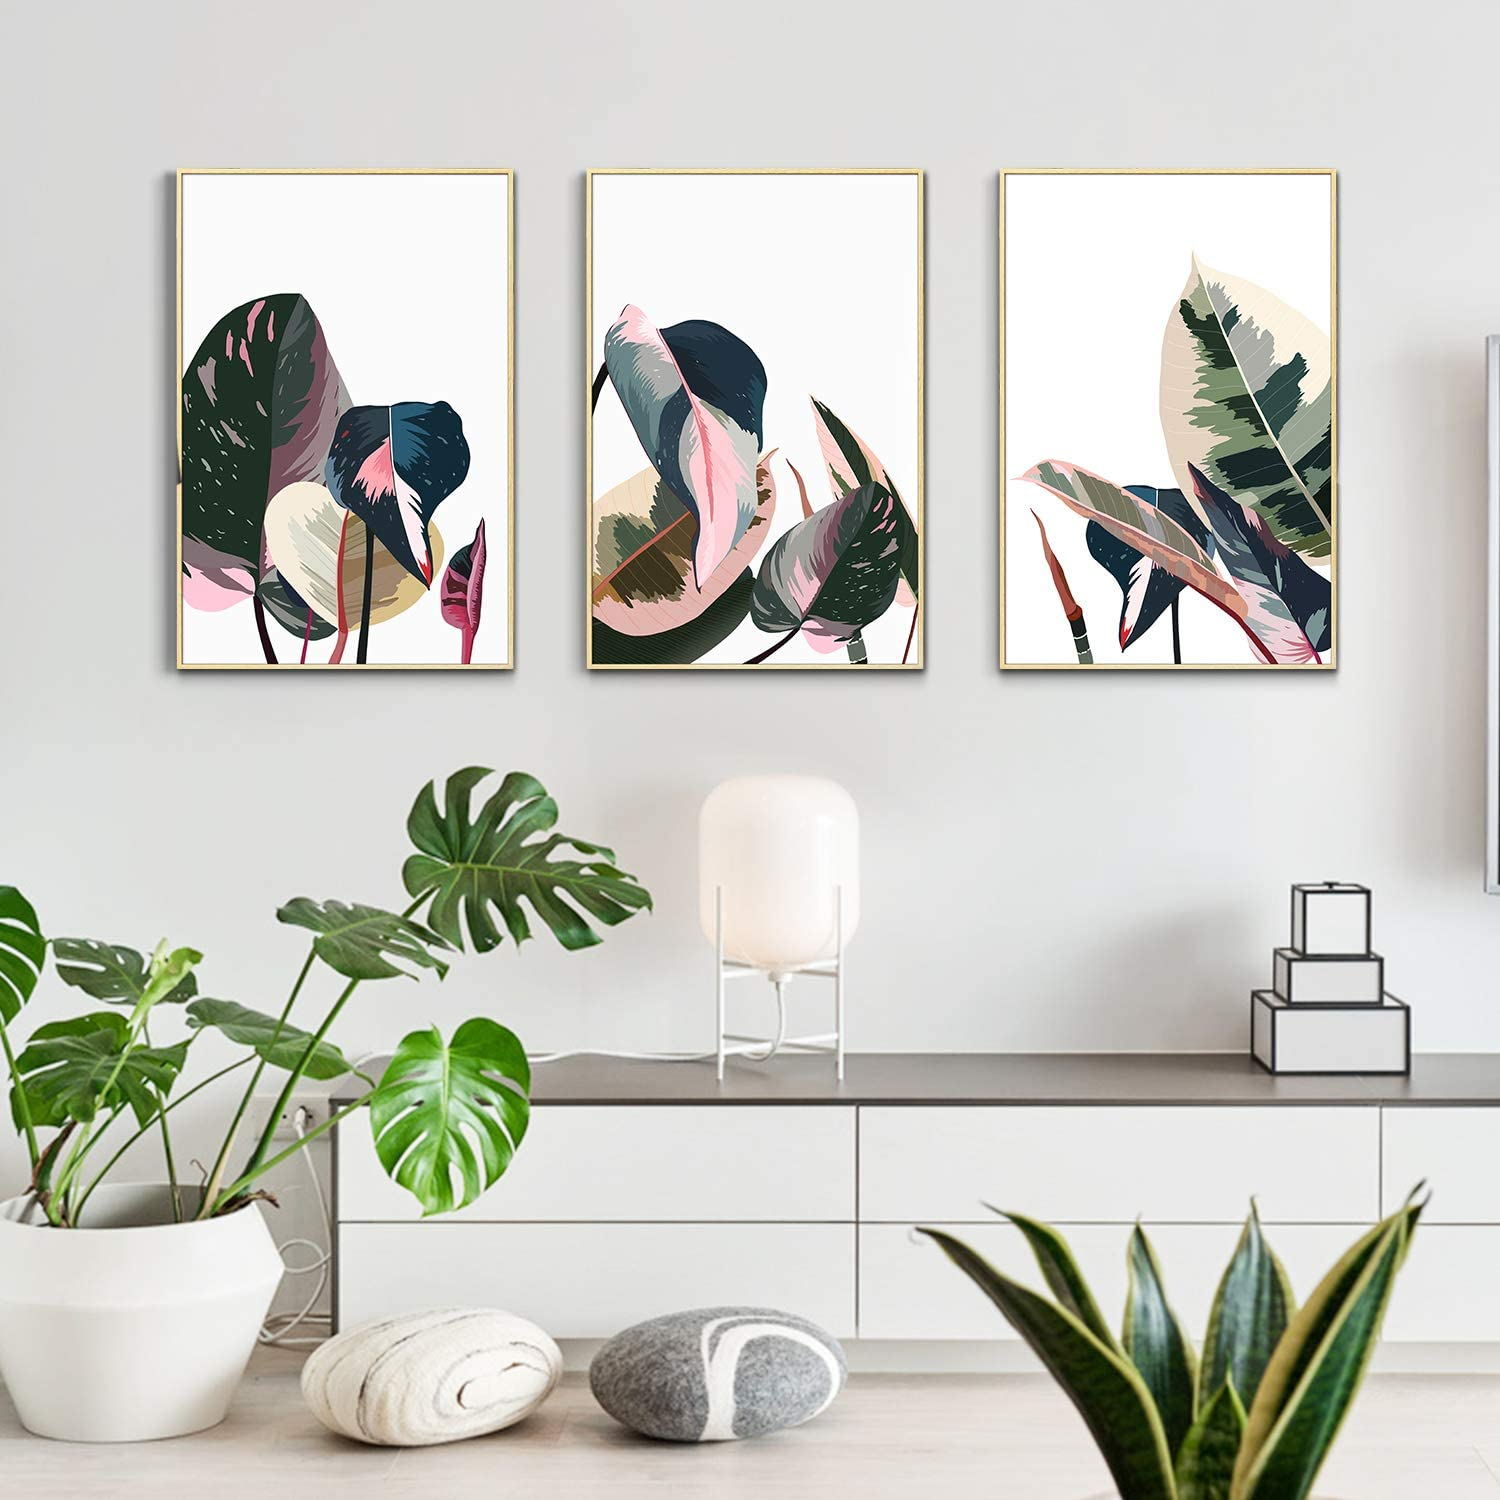 Artbyhannah 3 Pack 12 x 16 Inch Framed Canvas Wall Art Decor with Tropical Botanical Plant Prints Watercolored Canvas Prints Artwork Picture Ready to Hang for Home Decoration